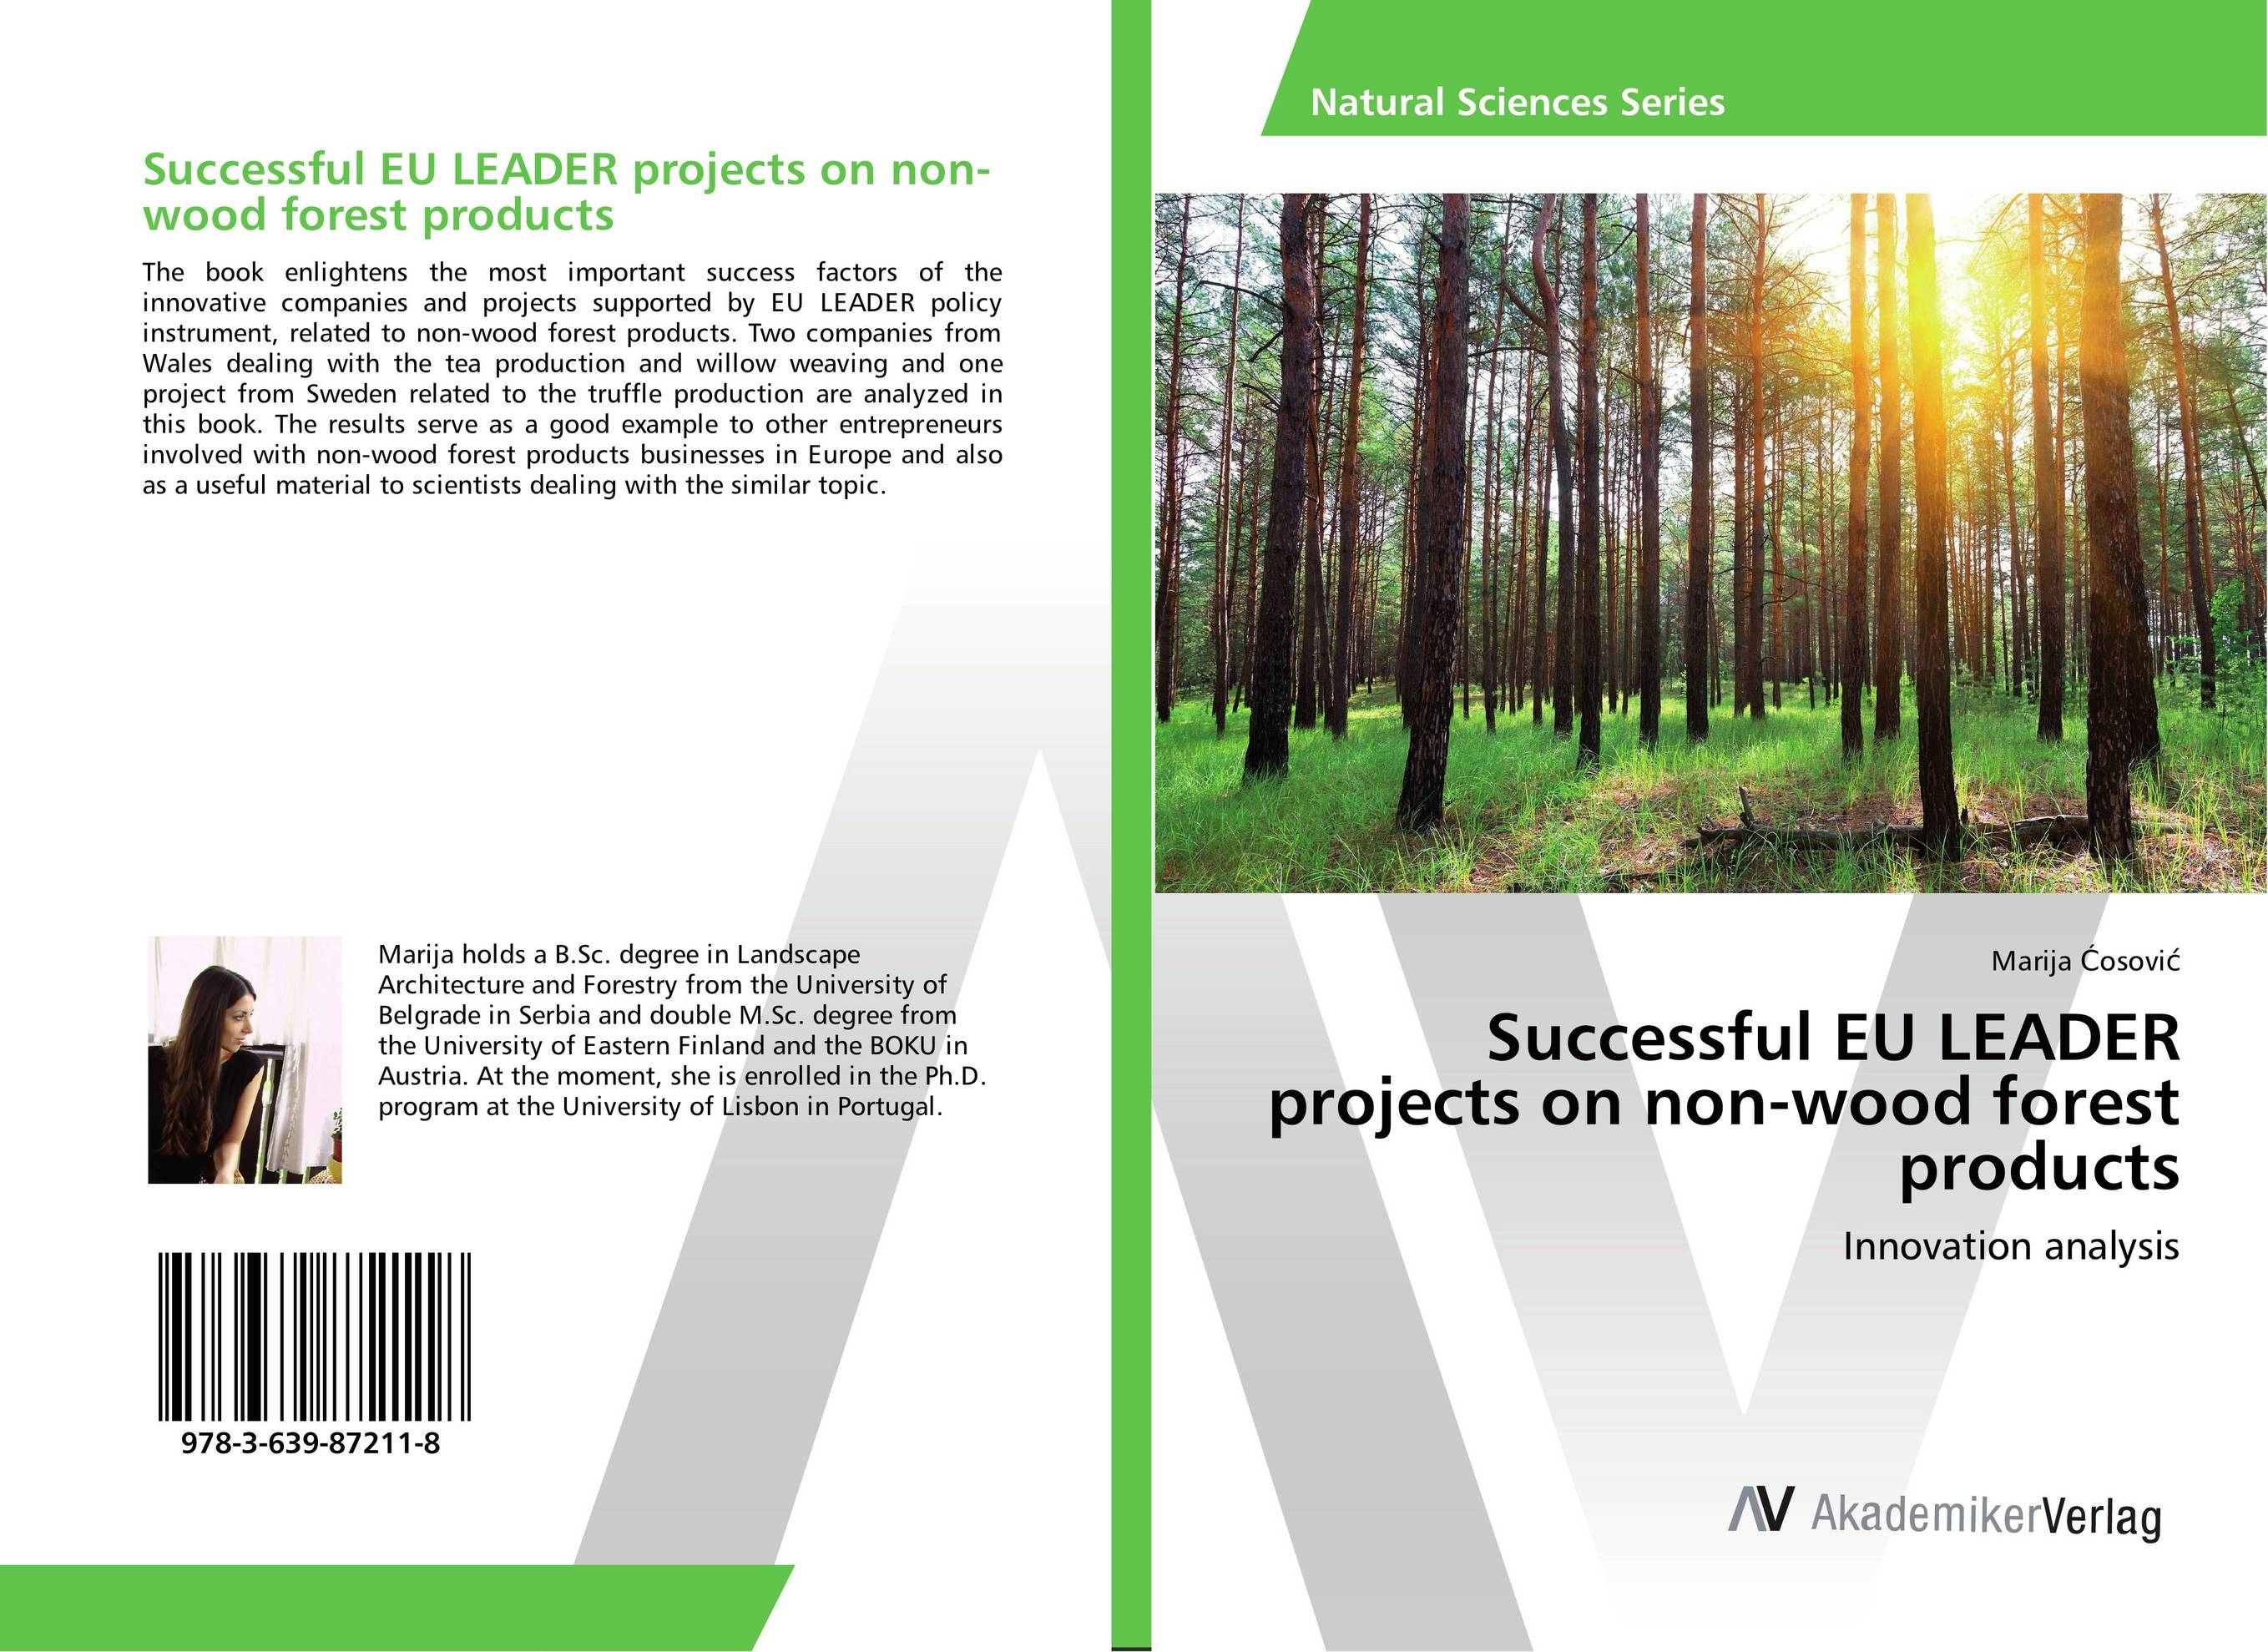 Successful EU LEADER projects on non-wood forest products managing projects made simple